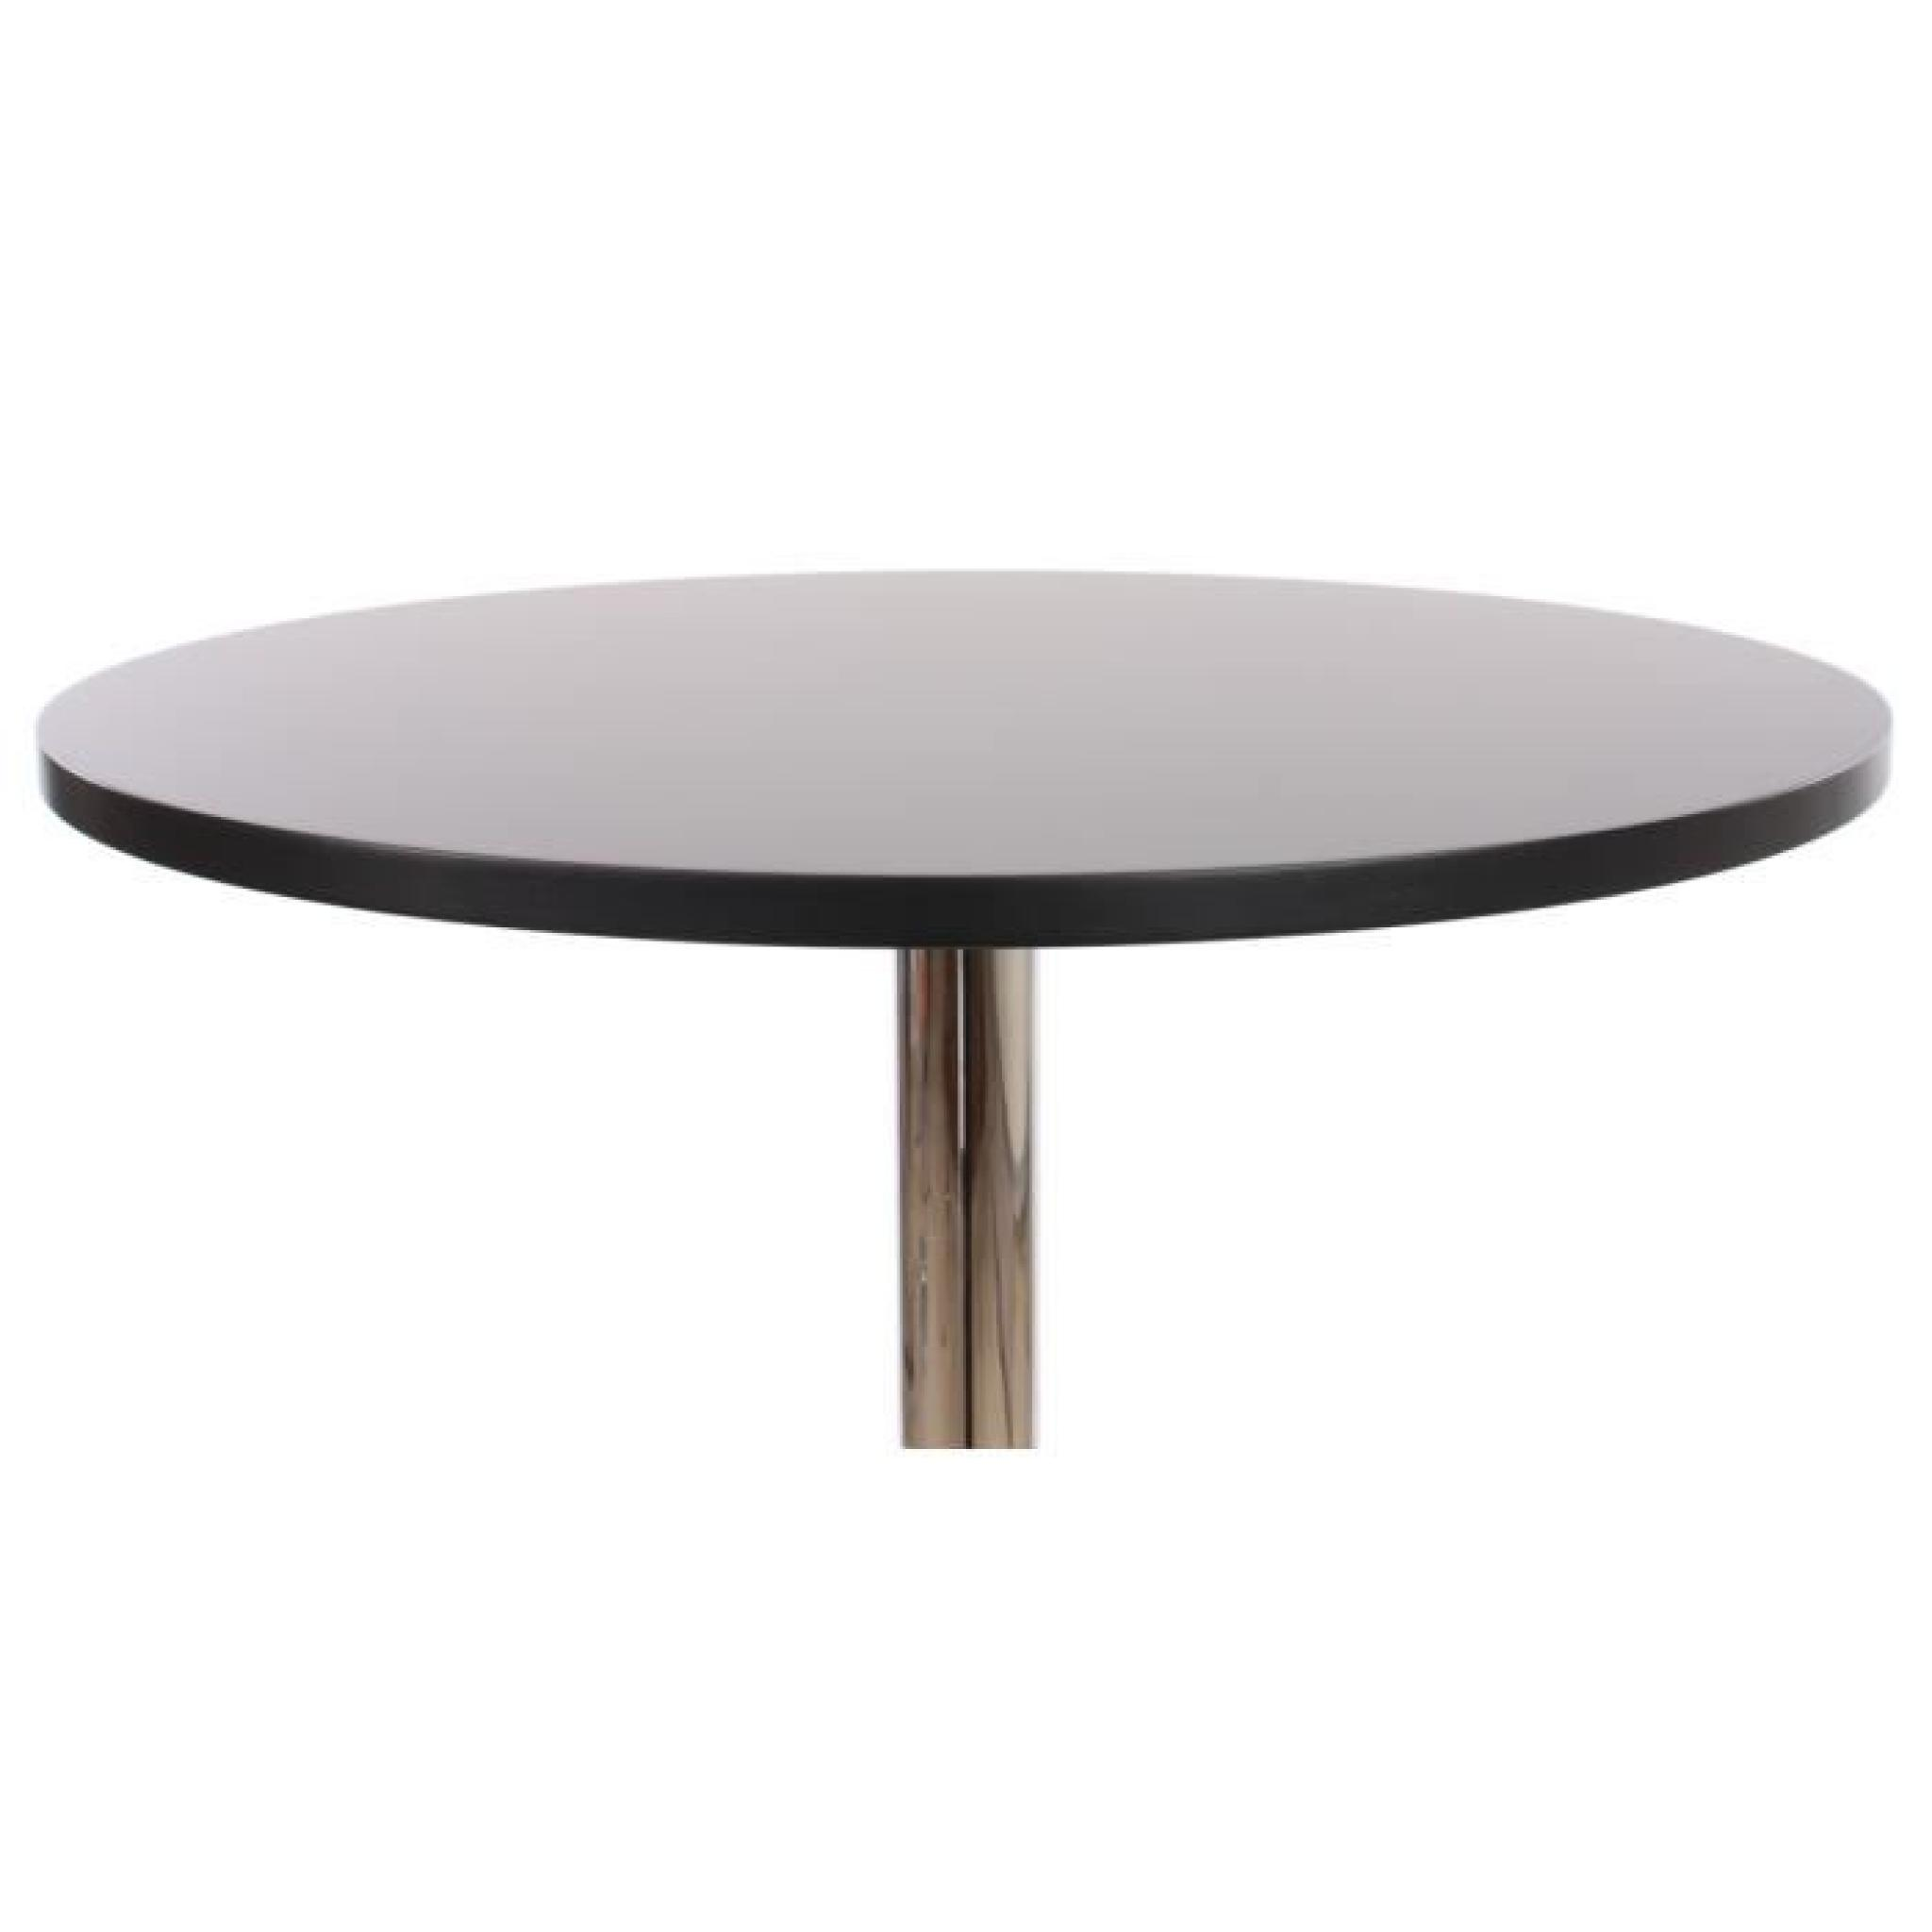 Table de bar table haute bari ronde avec repose pied for Achat table bar